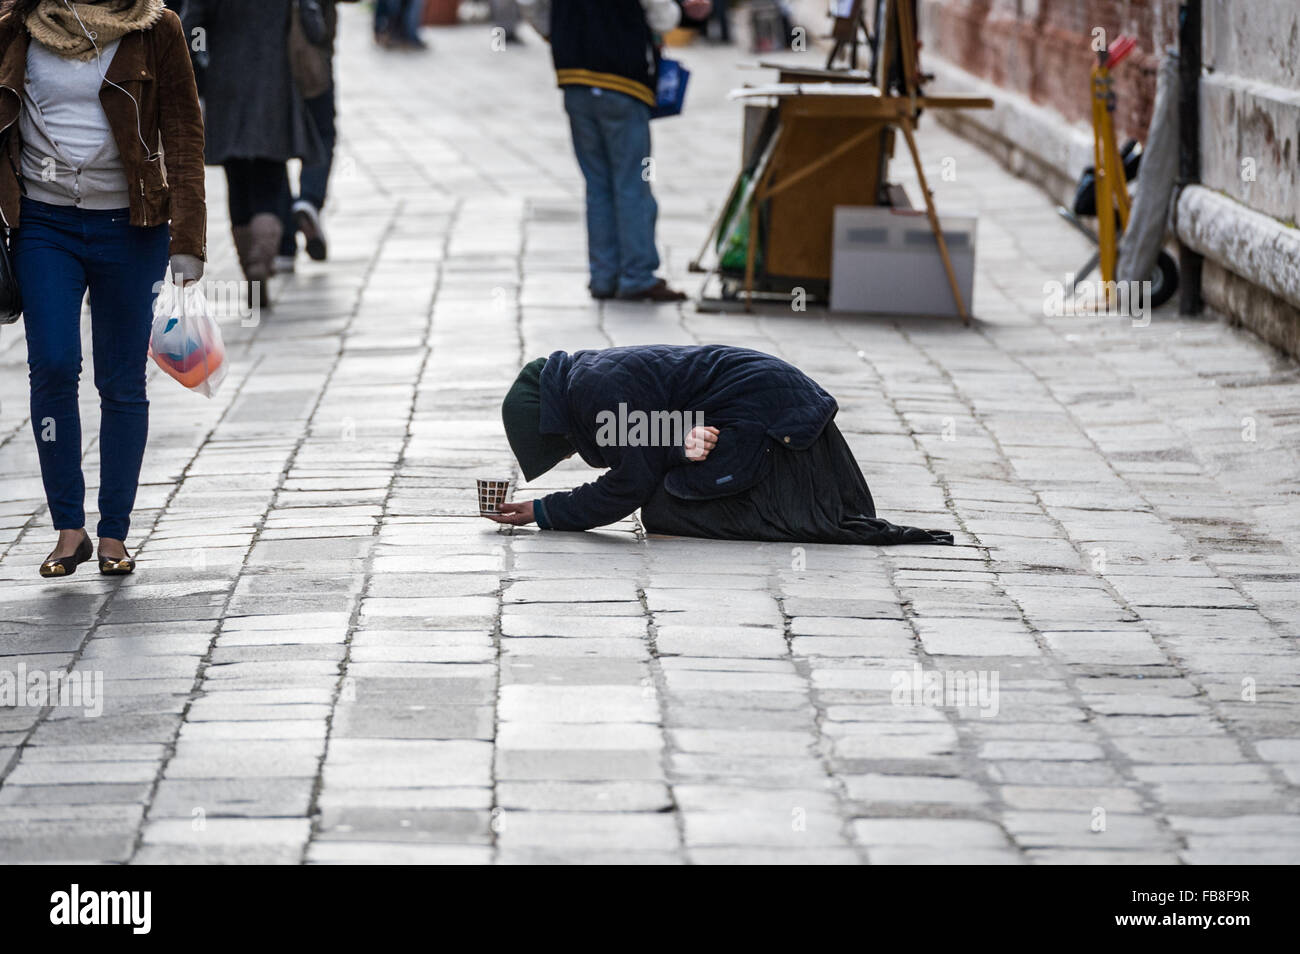 A woman covered in black on her knees with head bowed down waiting for charity. Venice, Italy. - Stock Image